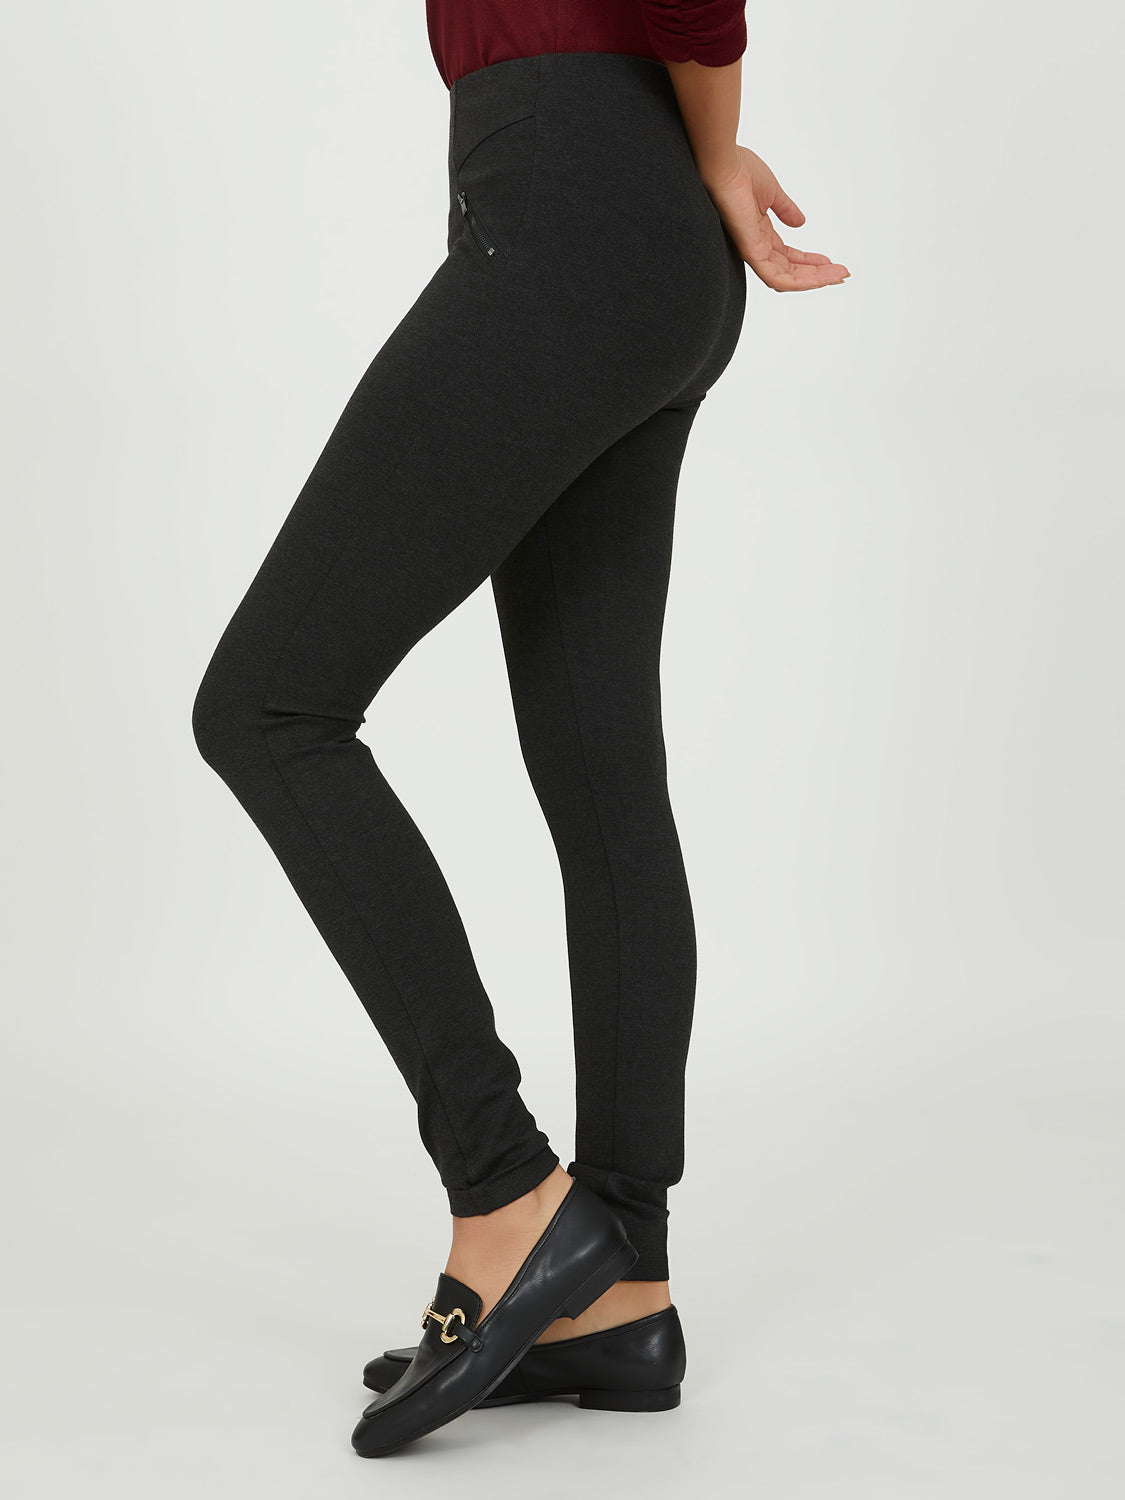 Pull-On Knit Pant